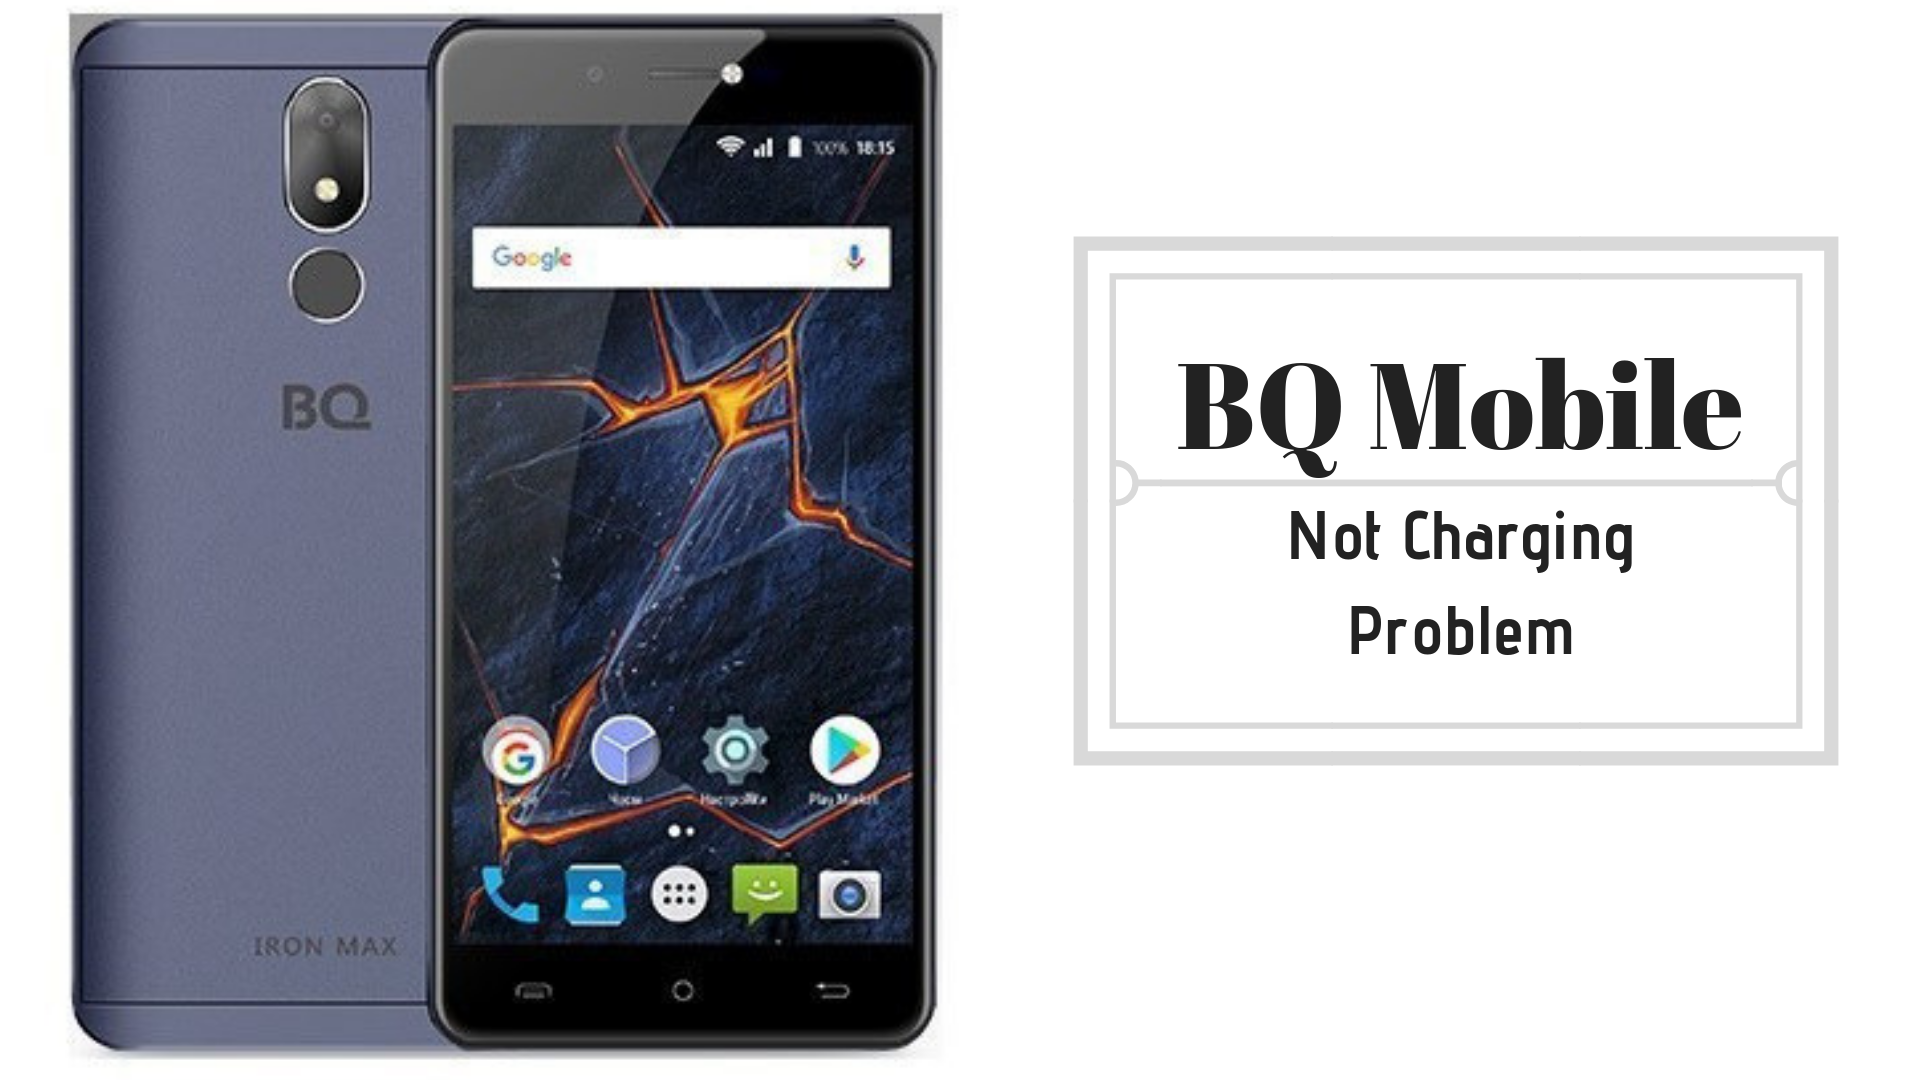 How To Fix BQ Mobile Not Charging Problem [Troubleshoot]